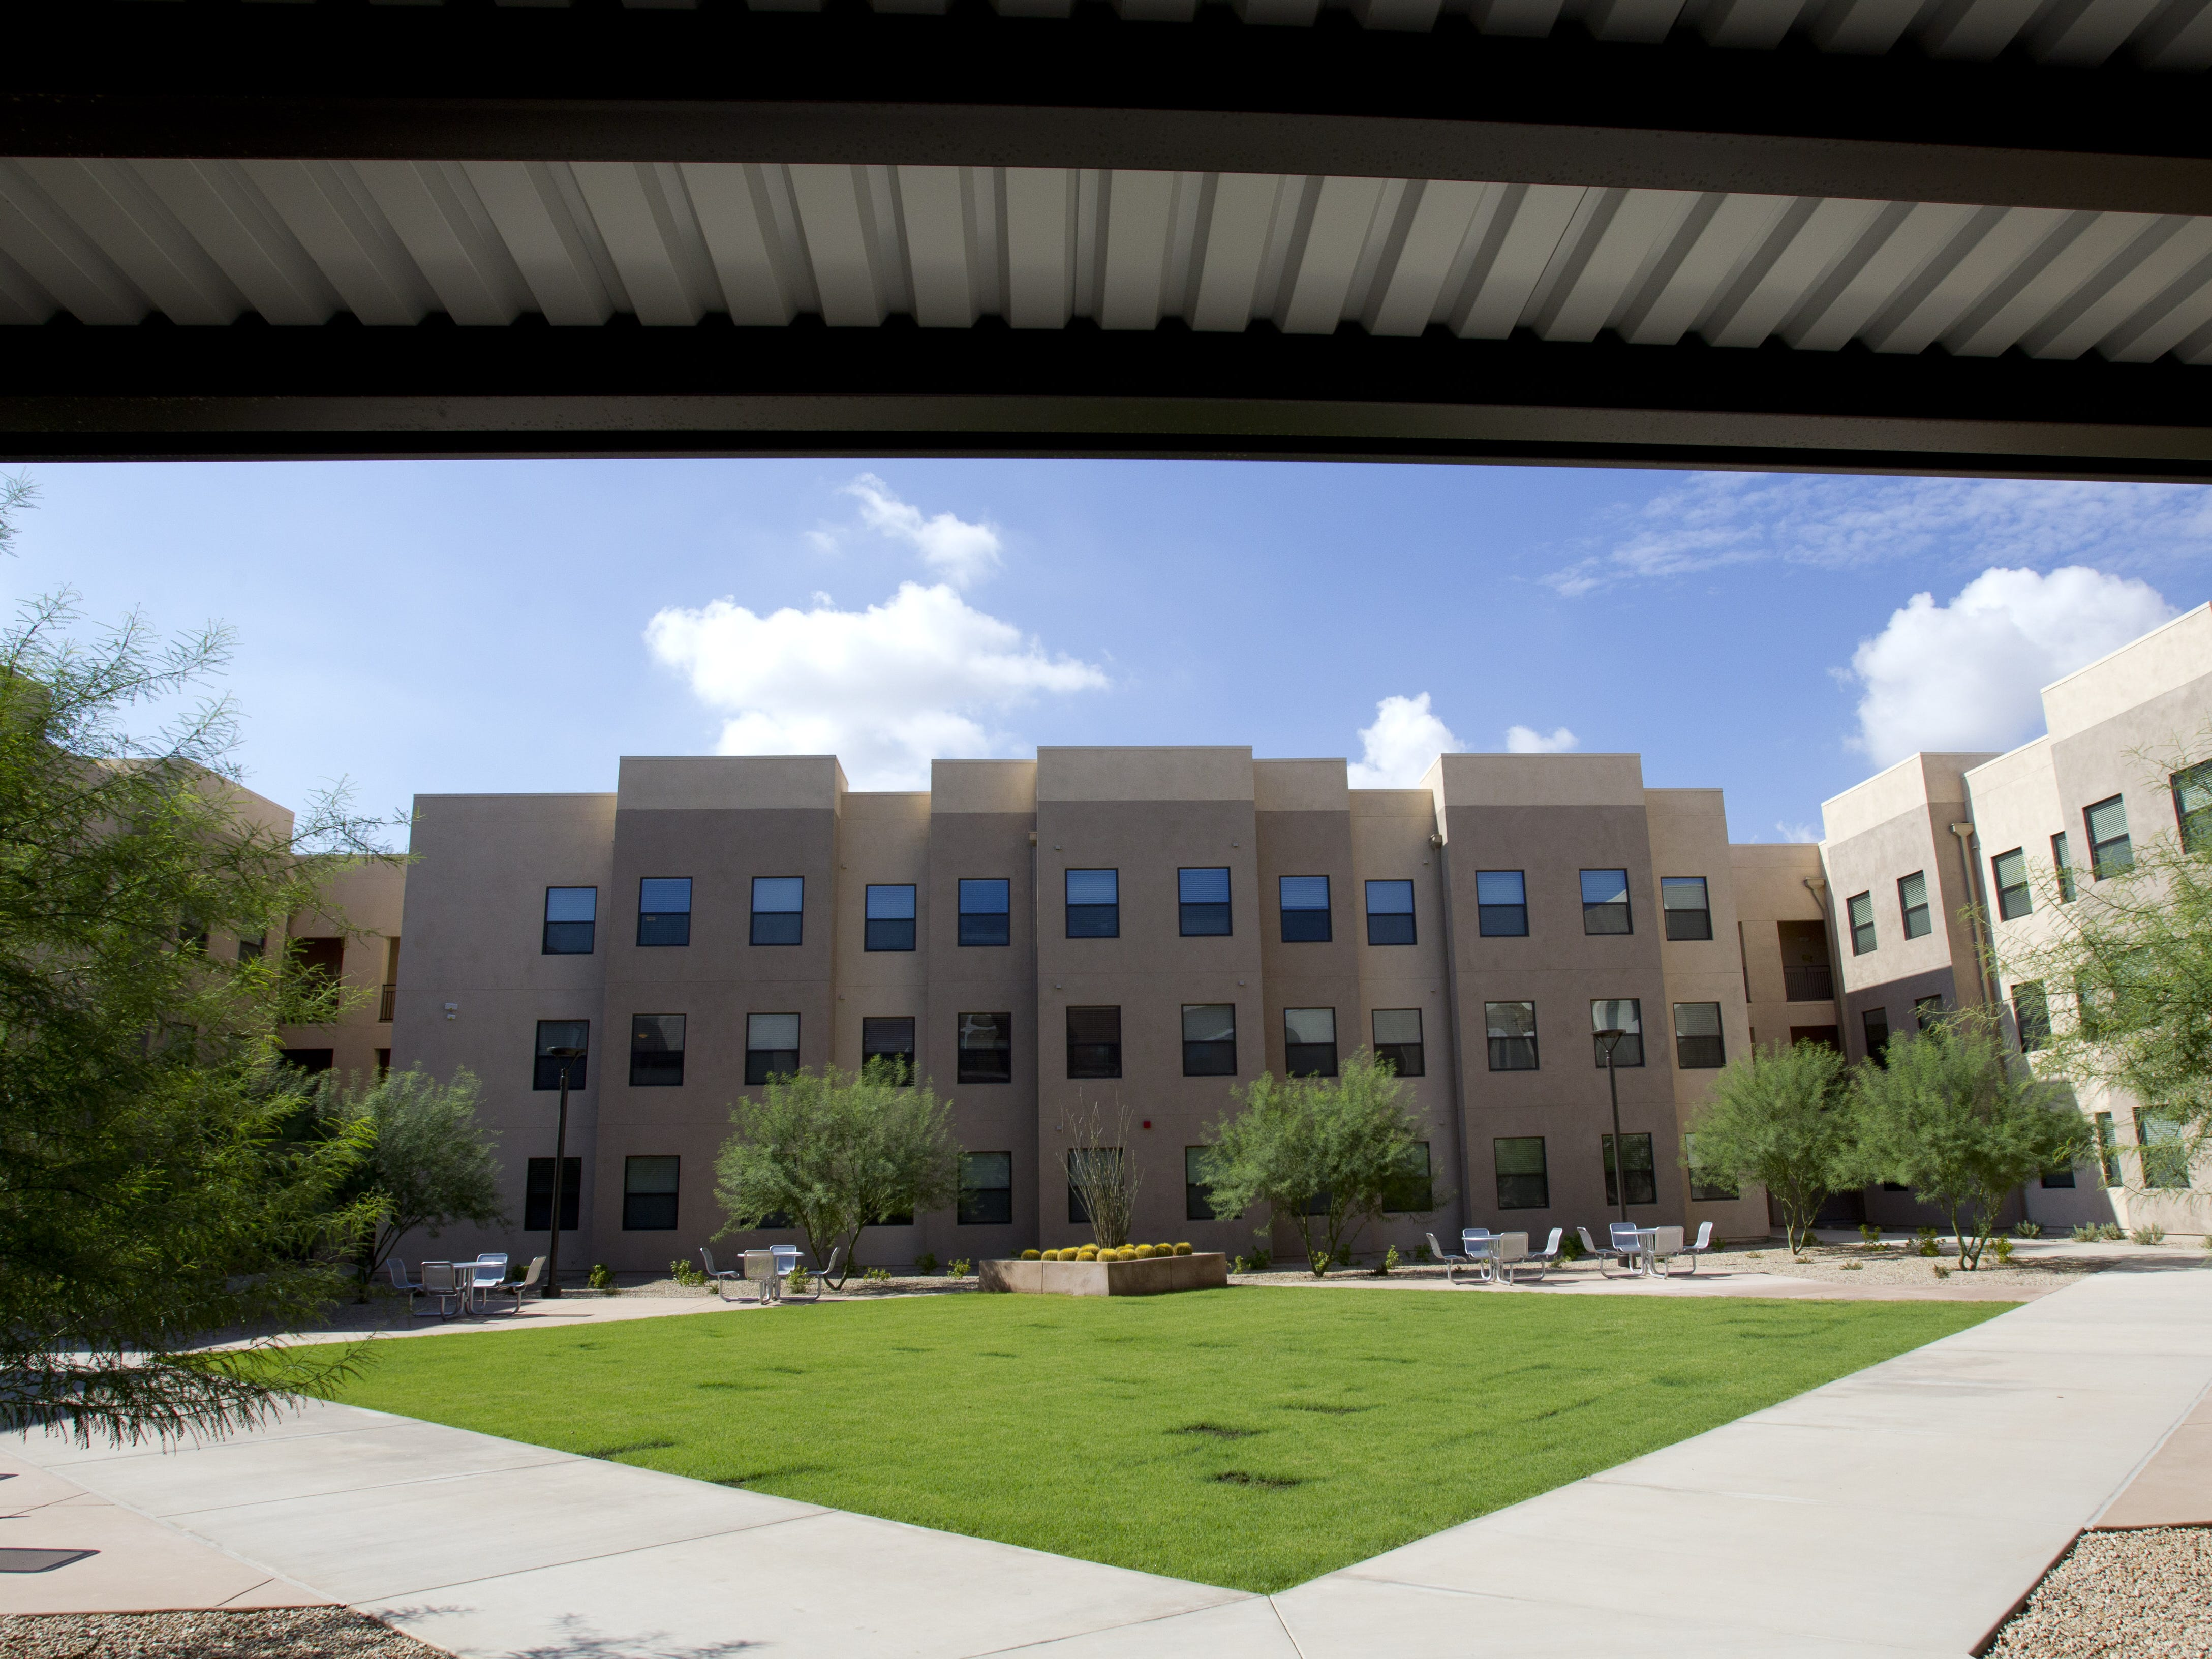 ASU's new residence hall Casa De Oro on ASU's West campus opened its doors to students on Aug. 18, 2012.